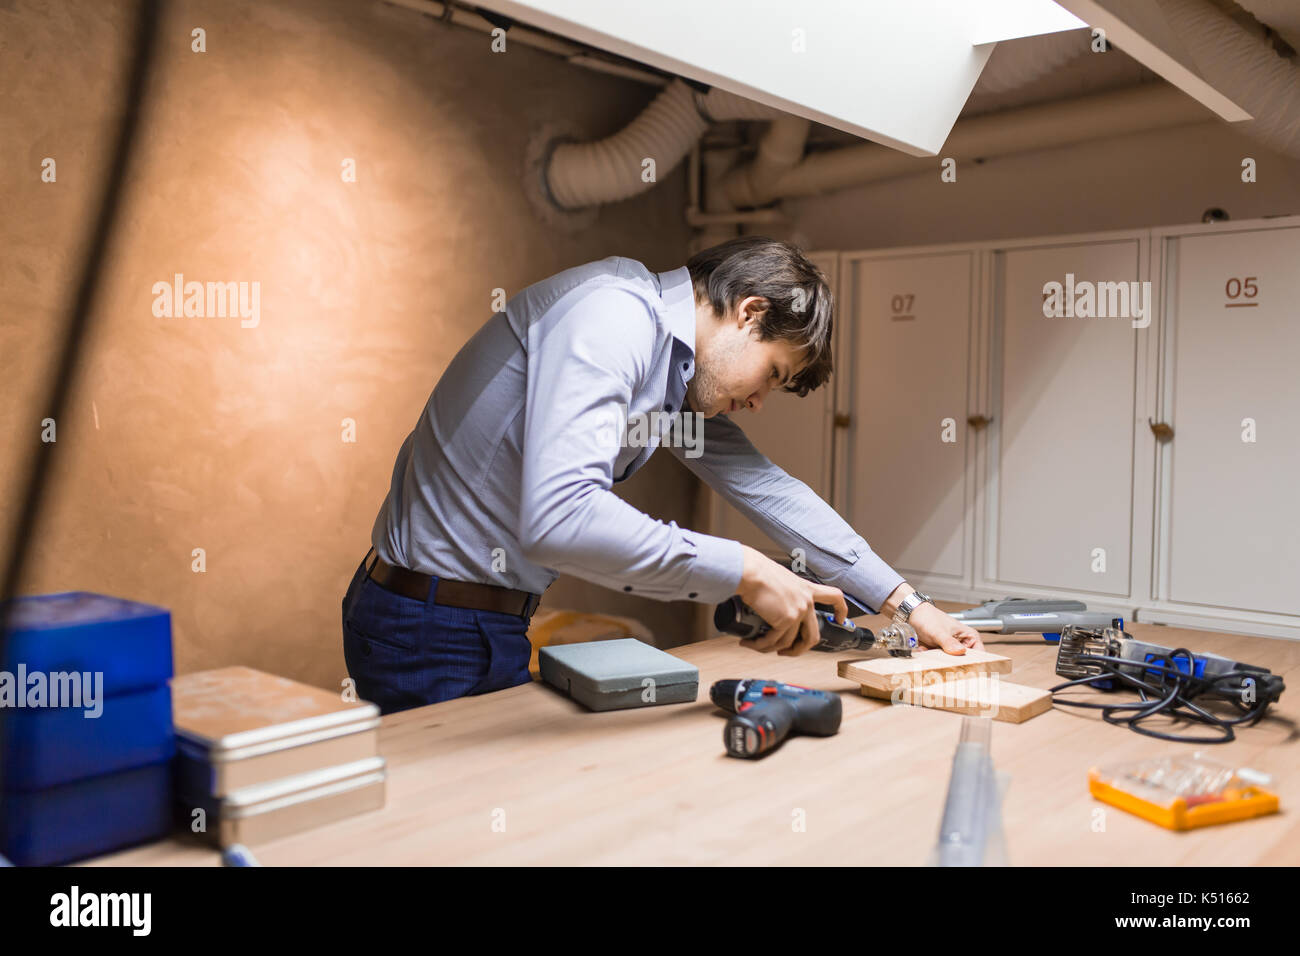 Joiner working and designing on workbench - Stock Image